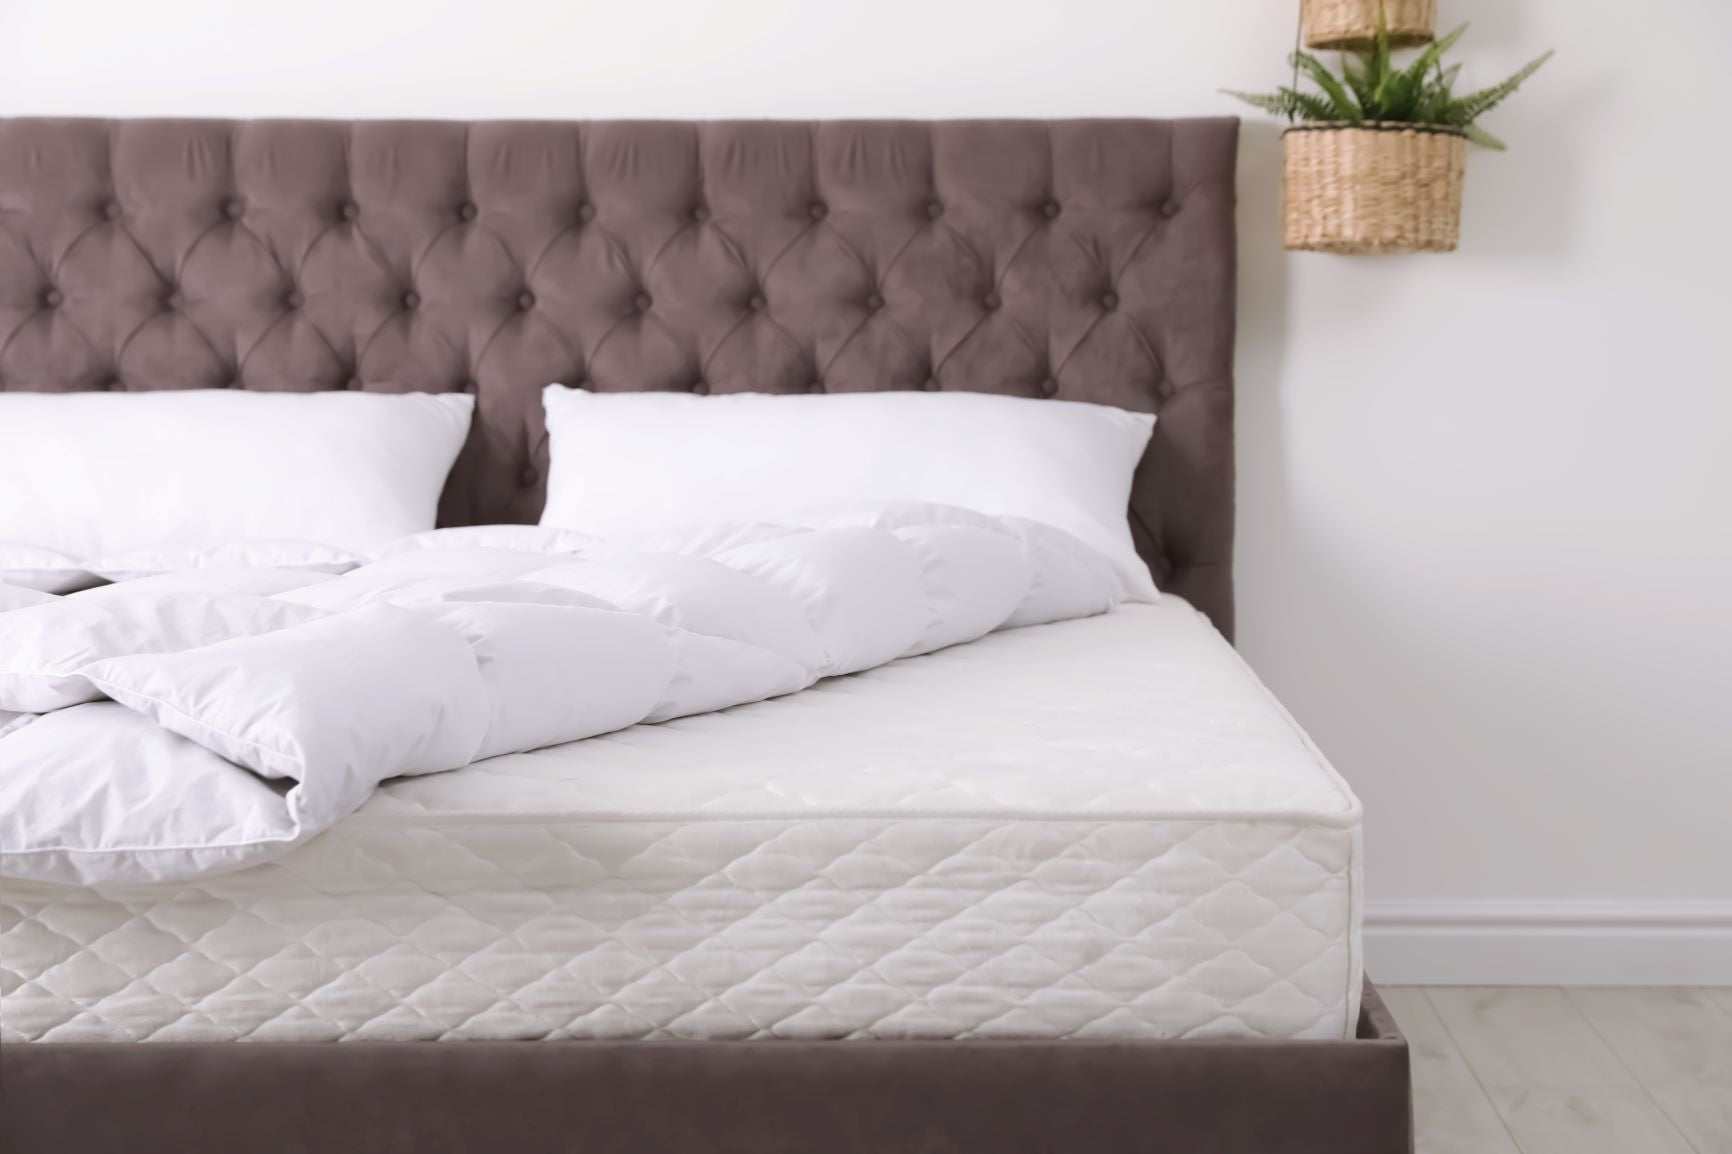 Clean mattress without sheets